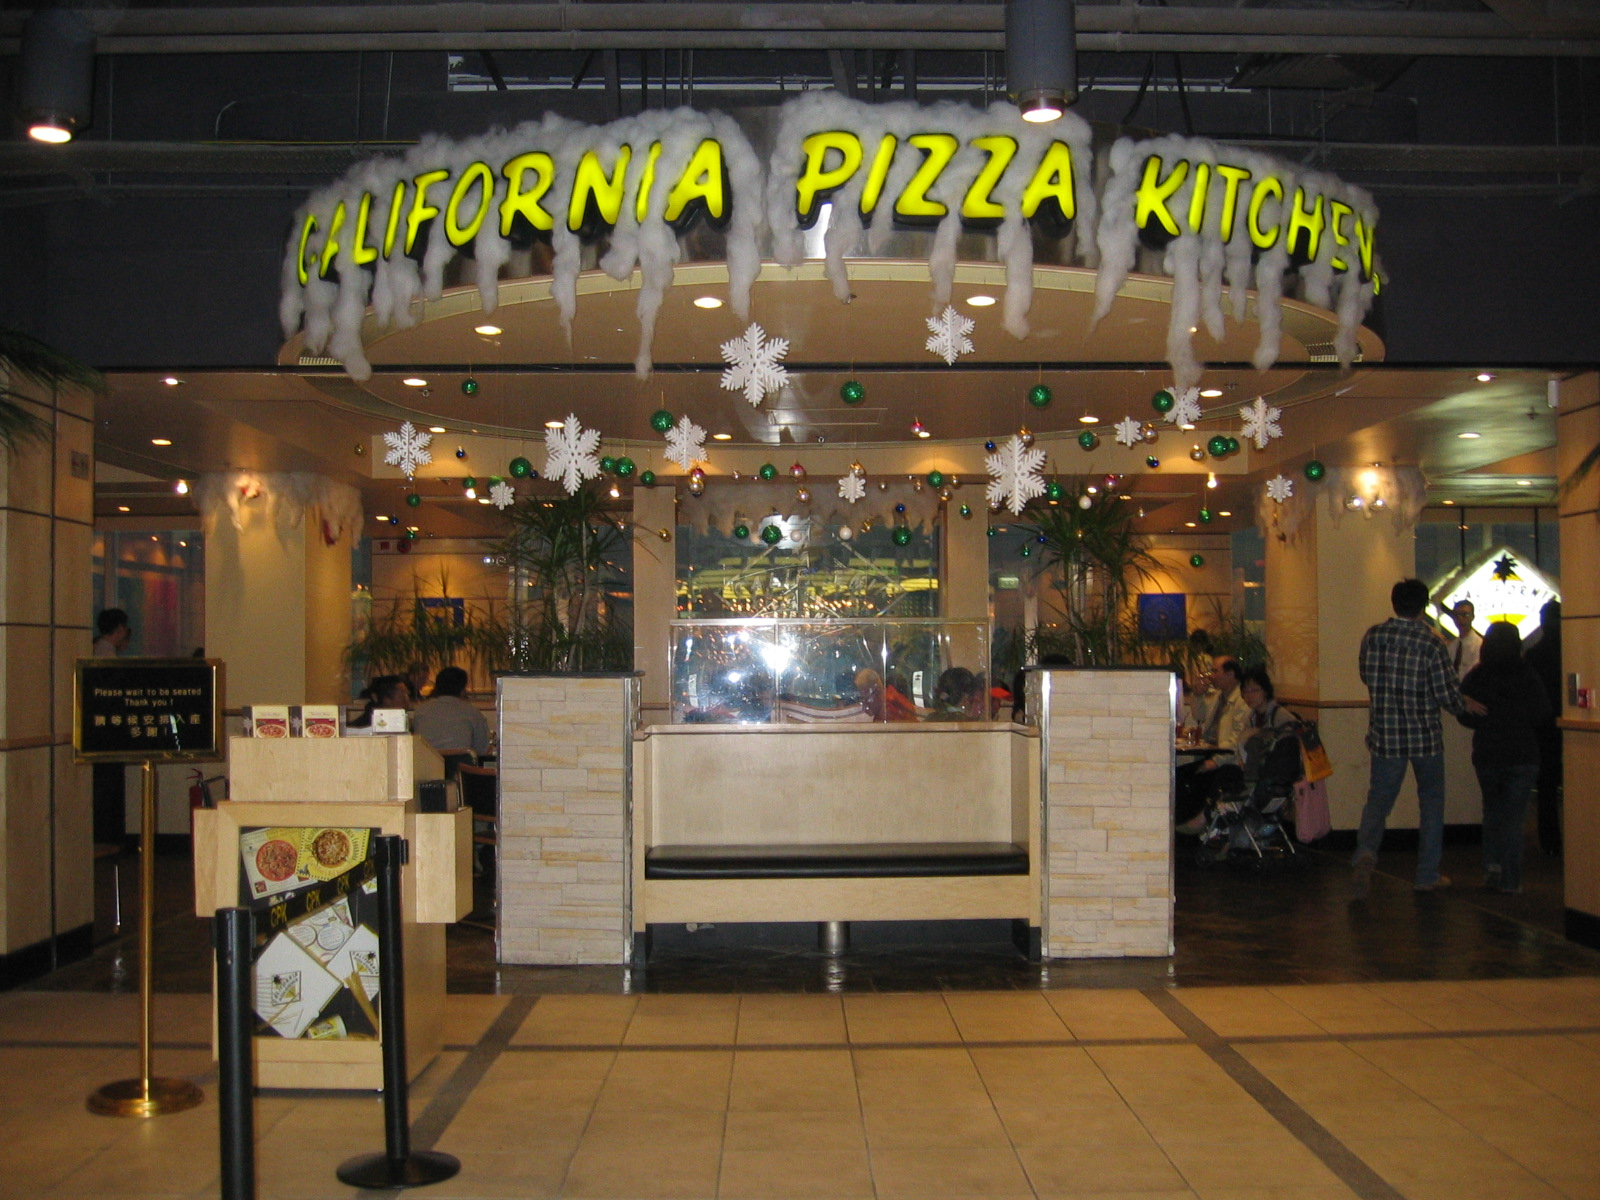 California Pizza Kitchen - Wikipedia, the free encyclopedia